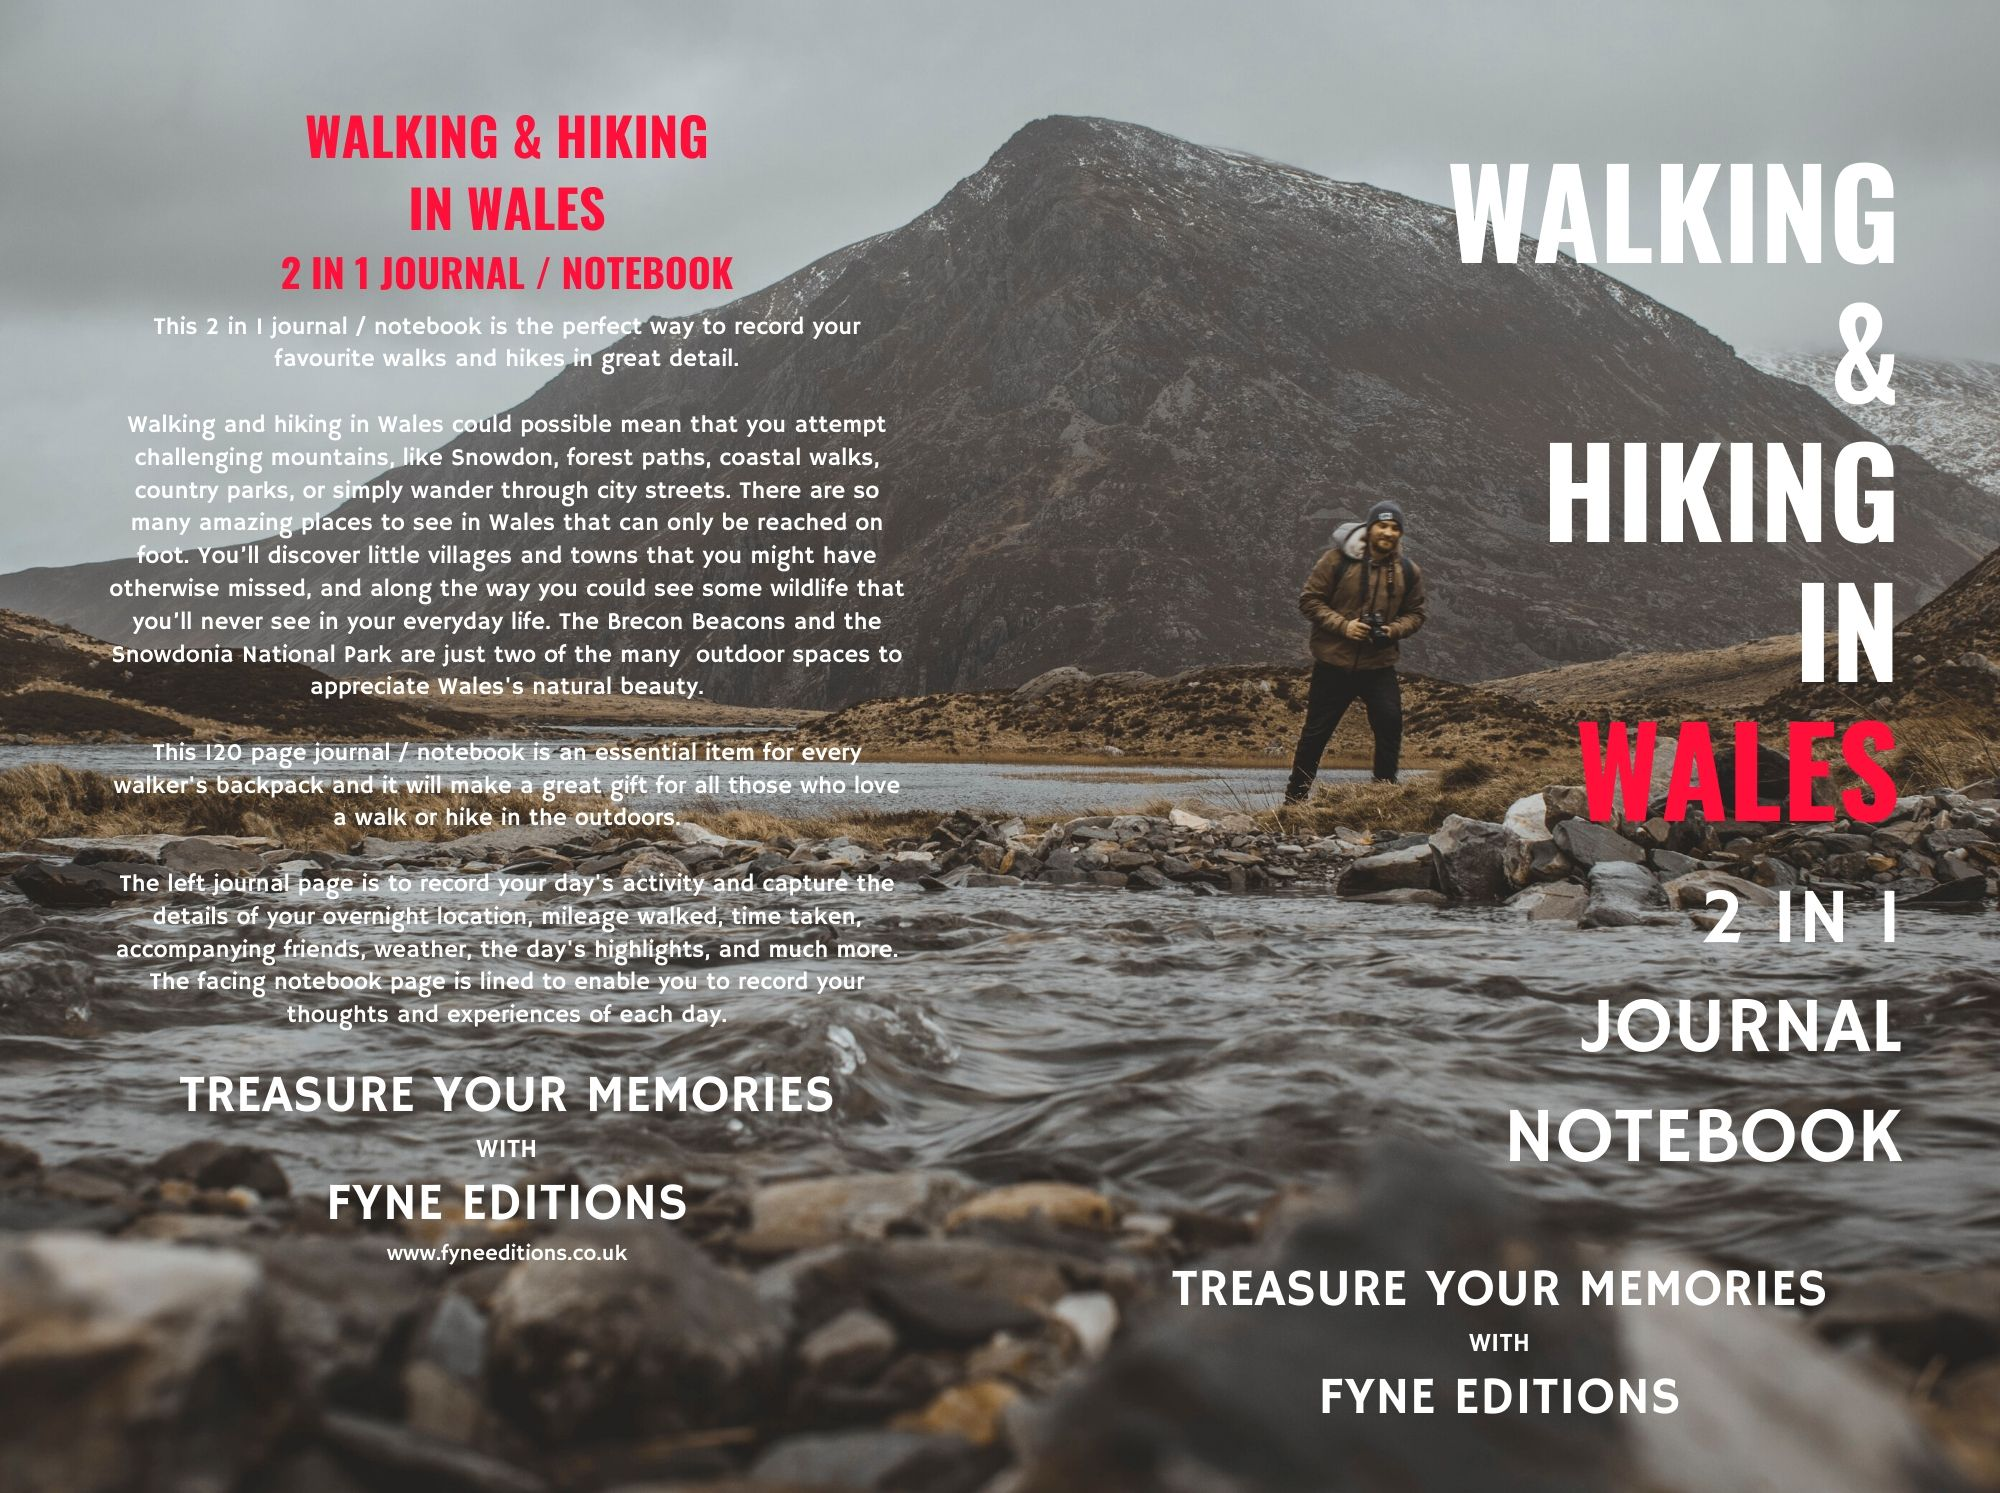 Walking & Hiking in Wales Journal & Notebook